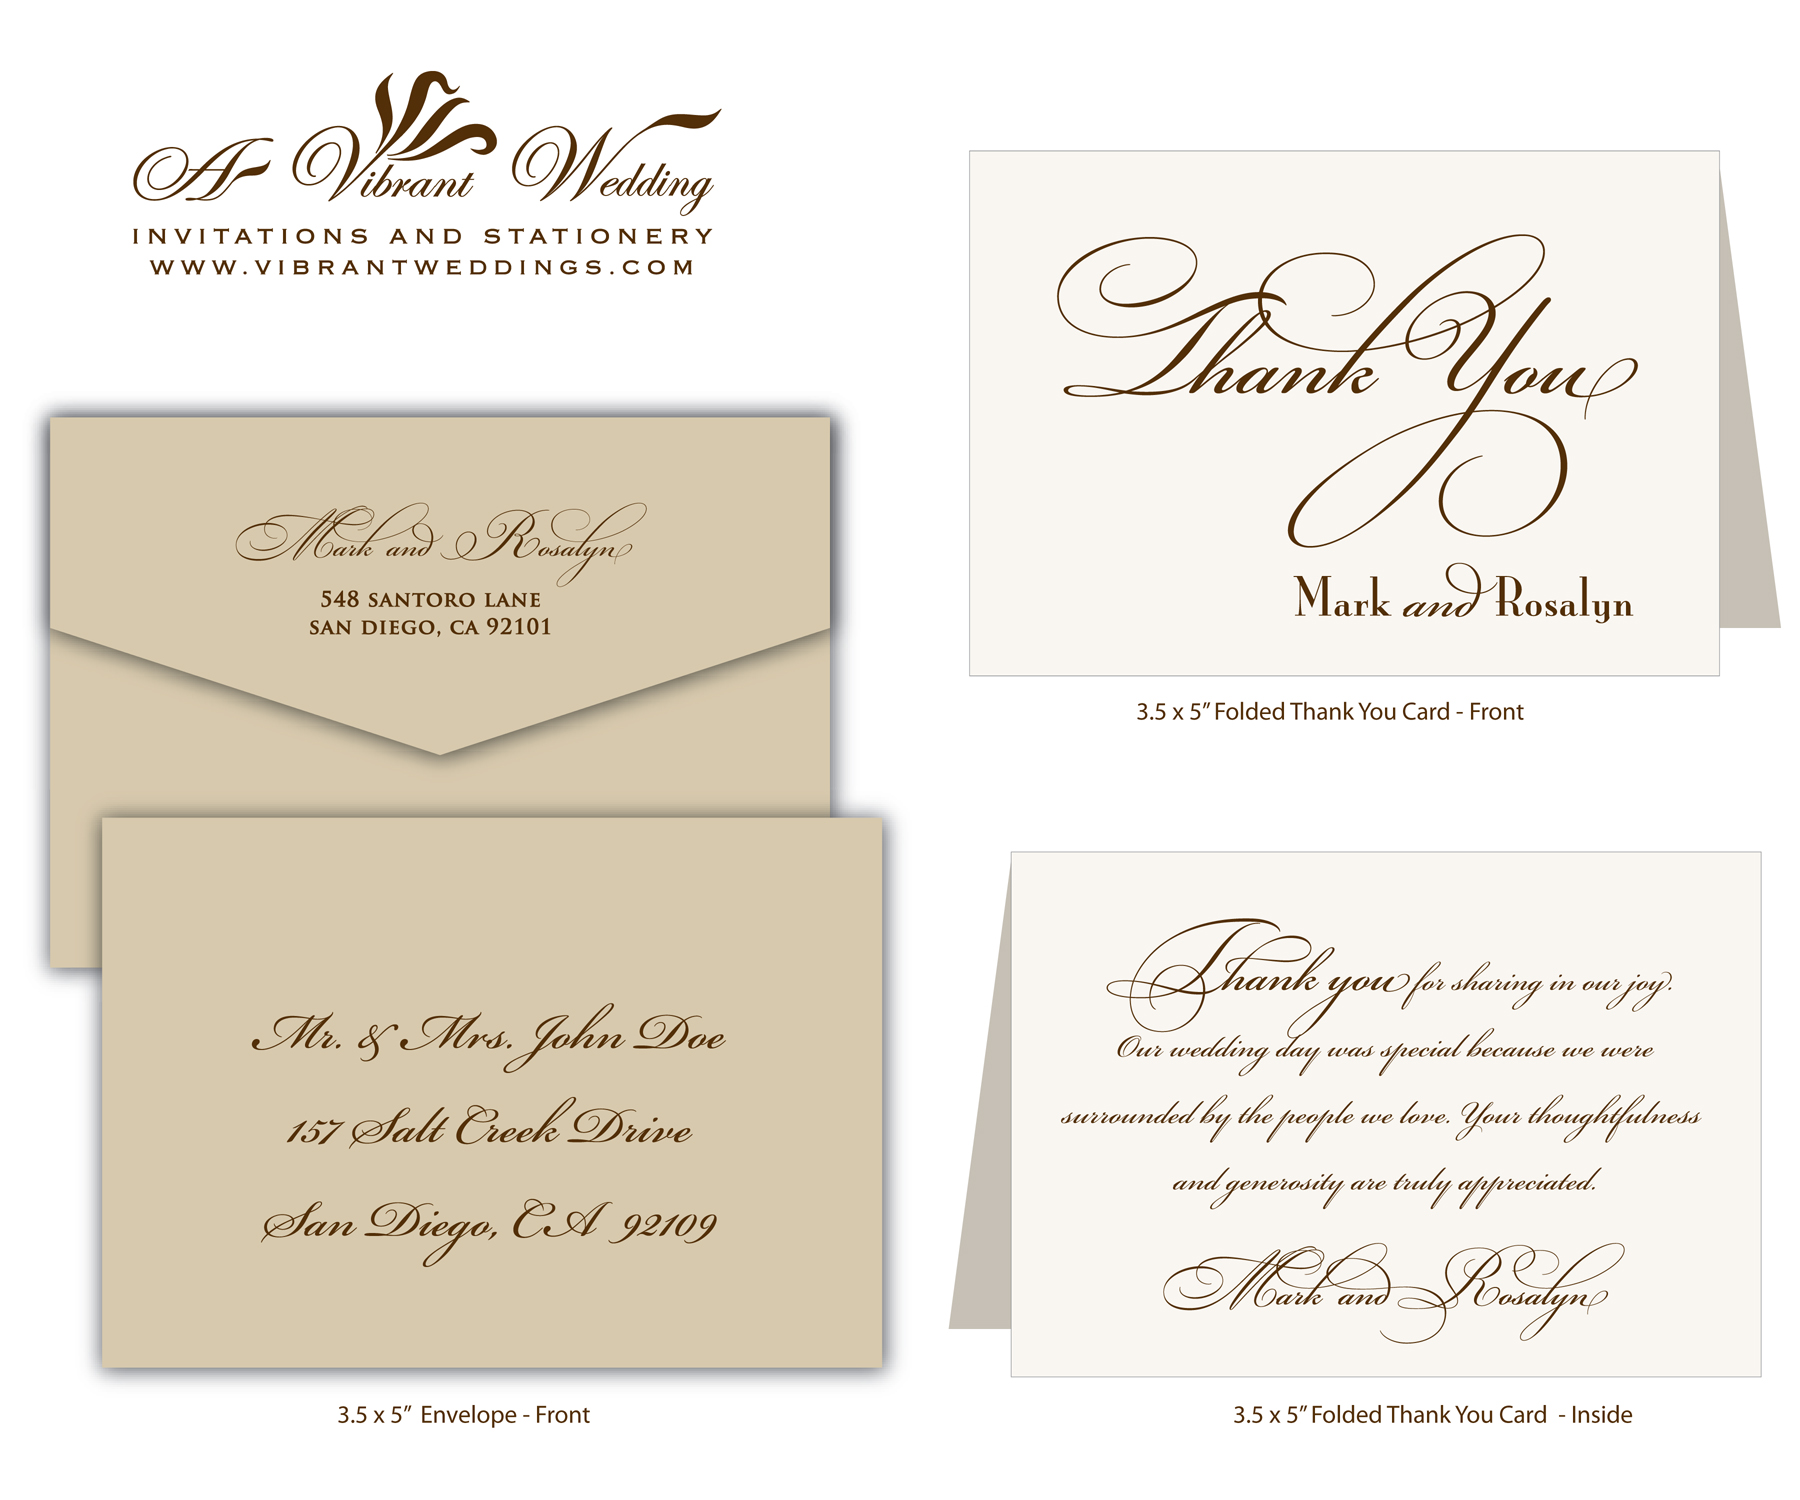 Thank You Note Wording For Wedding Photographer – Wording for Wedding Thank You Cards